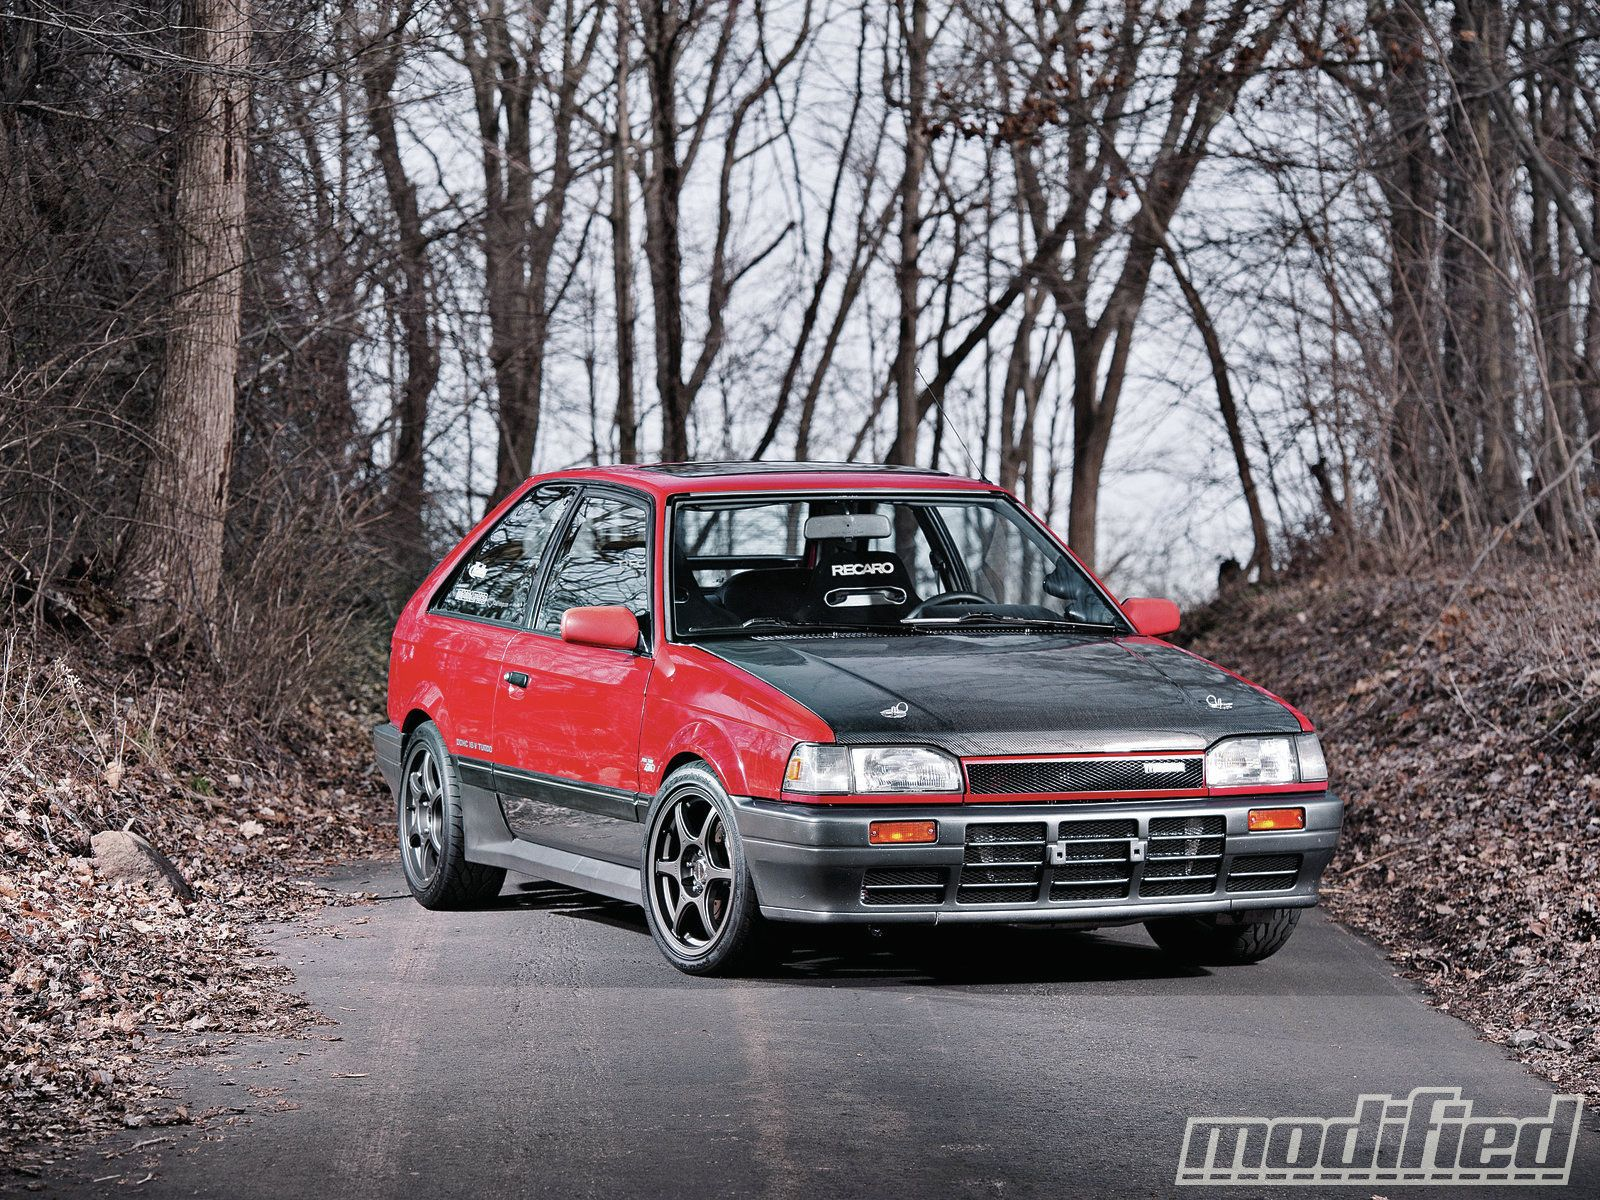 Photo 1 / 8 | 1988 Mazda 323 GTX - Unsung Hero